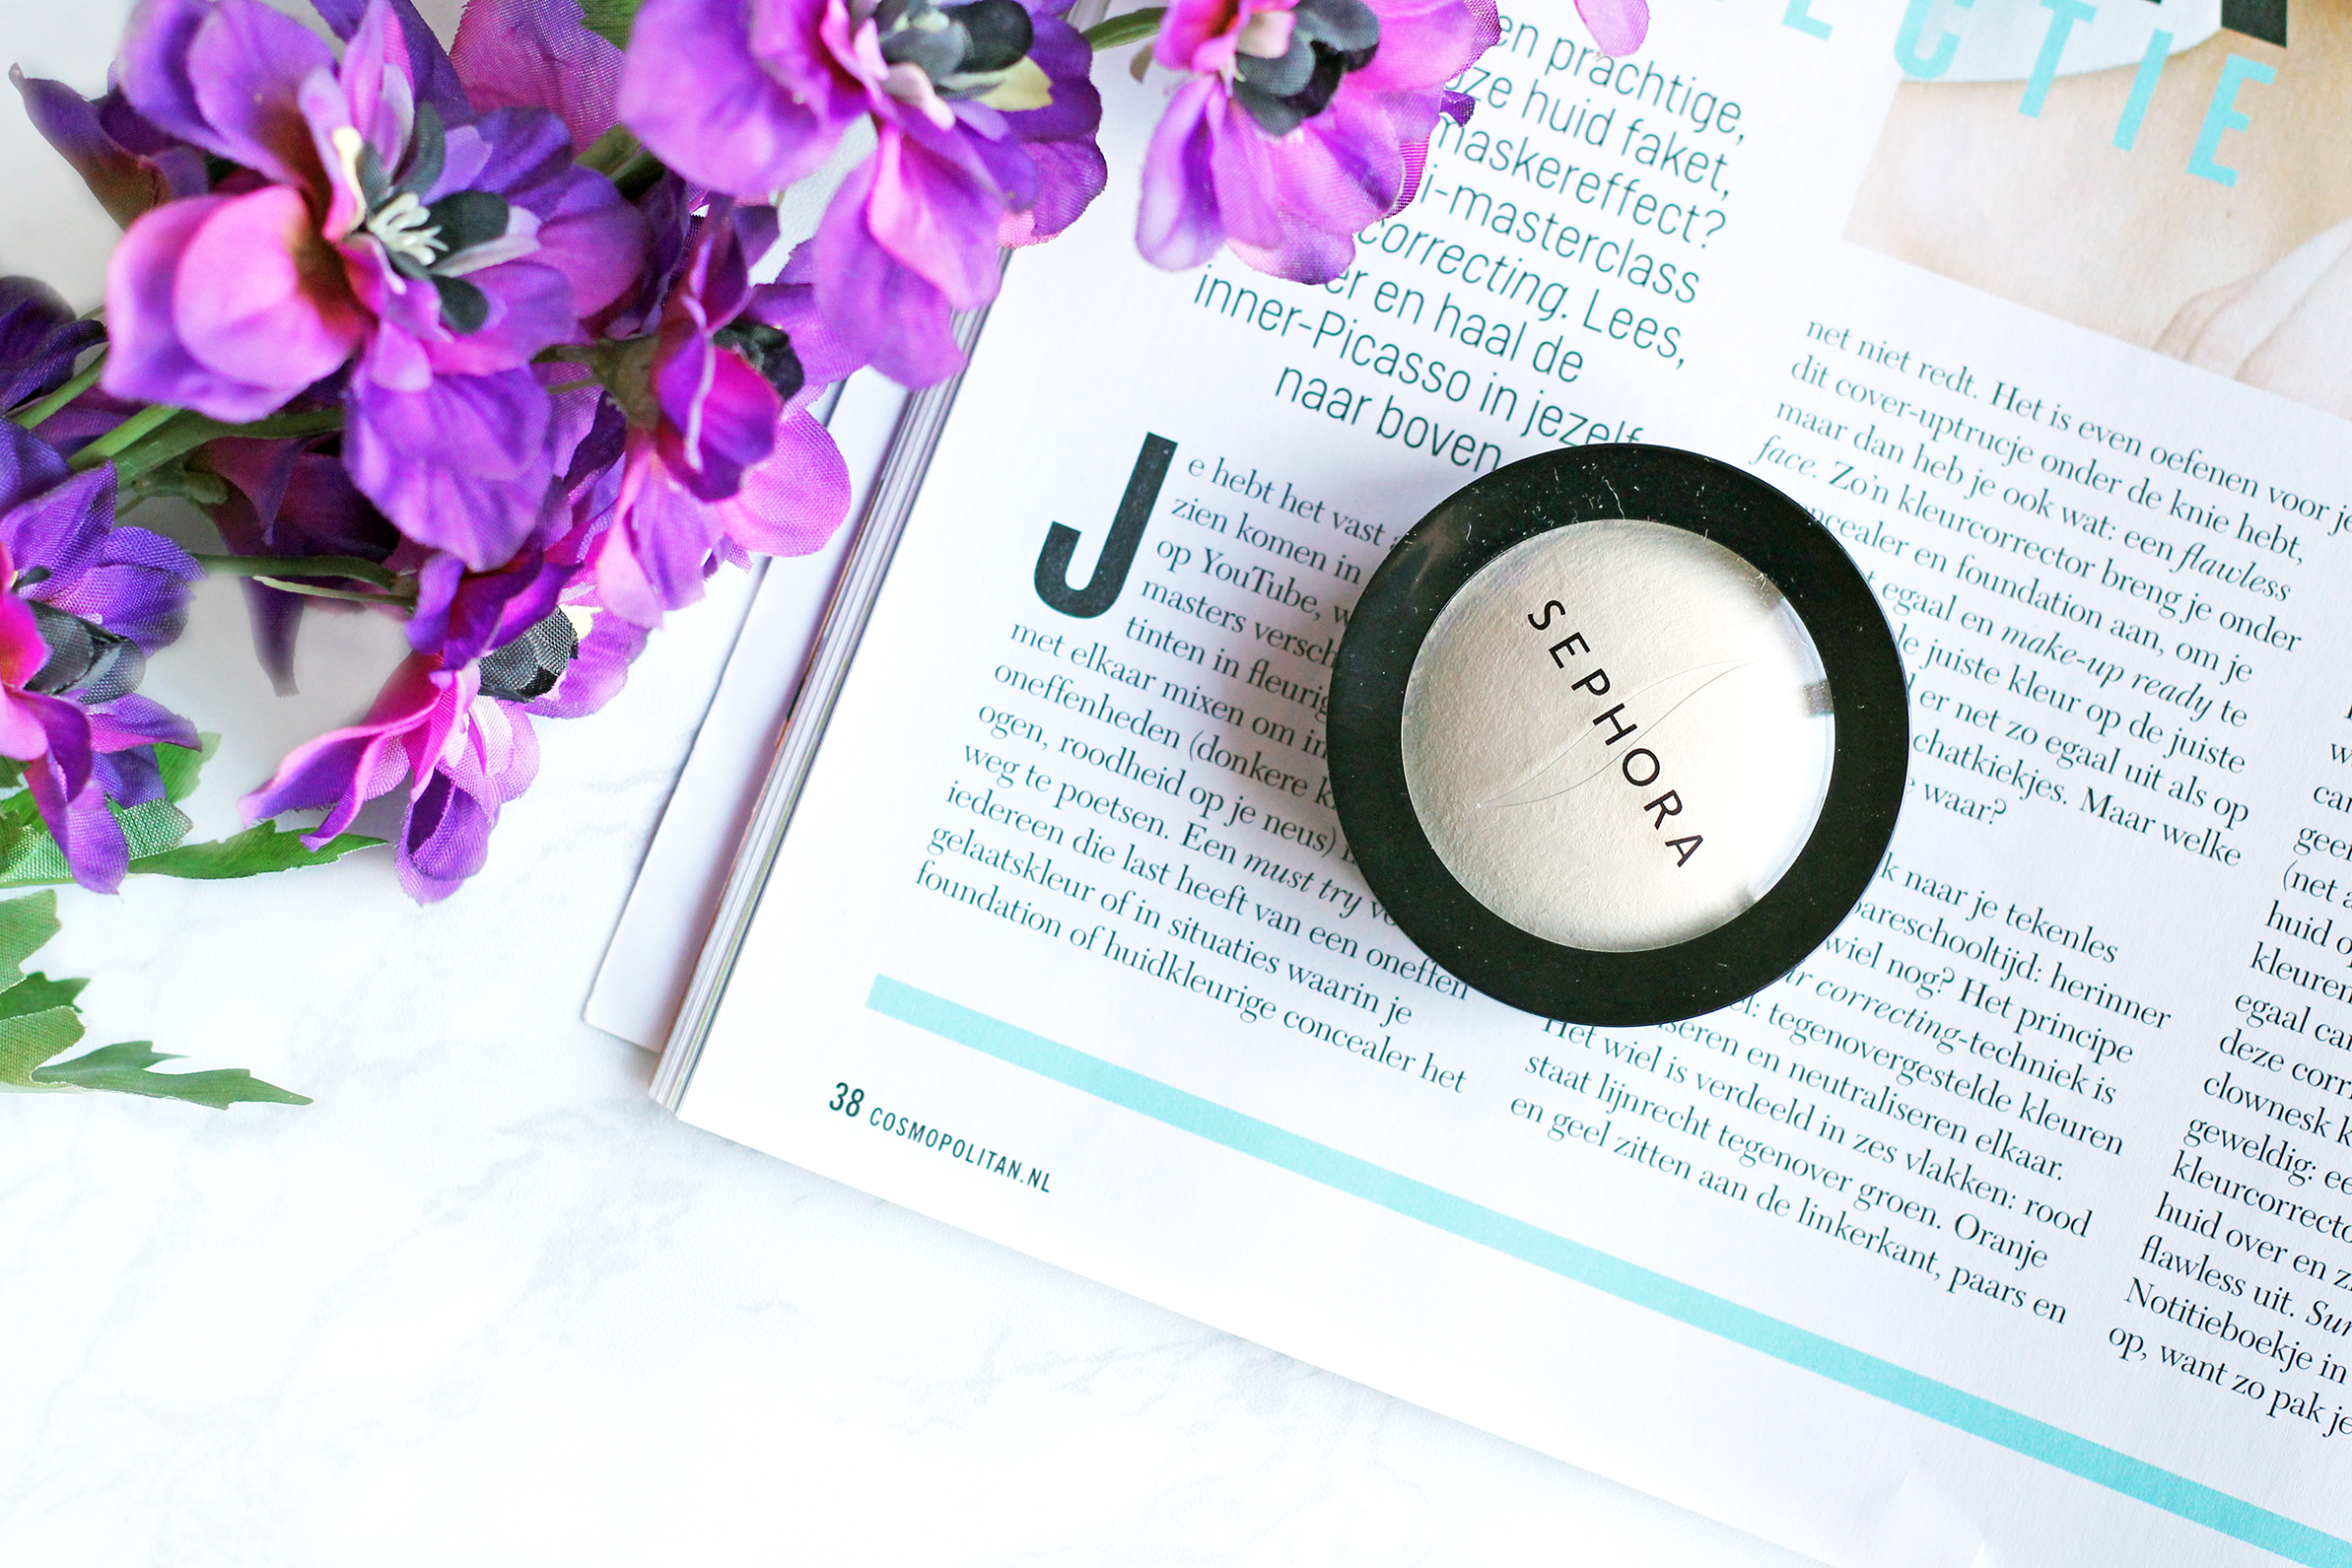 sephora baked luminizer review